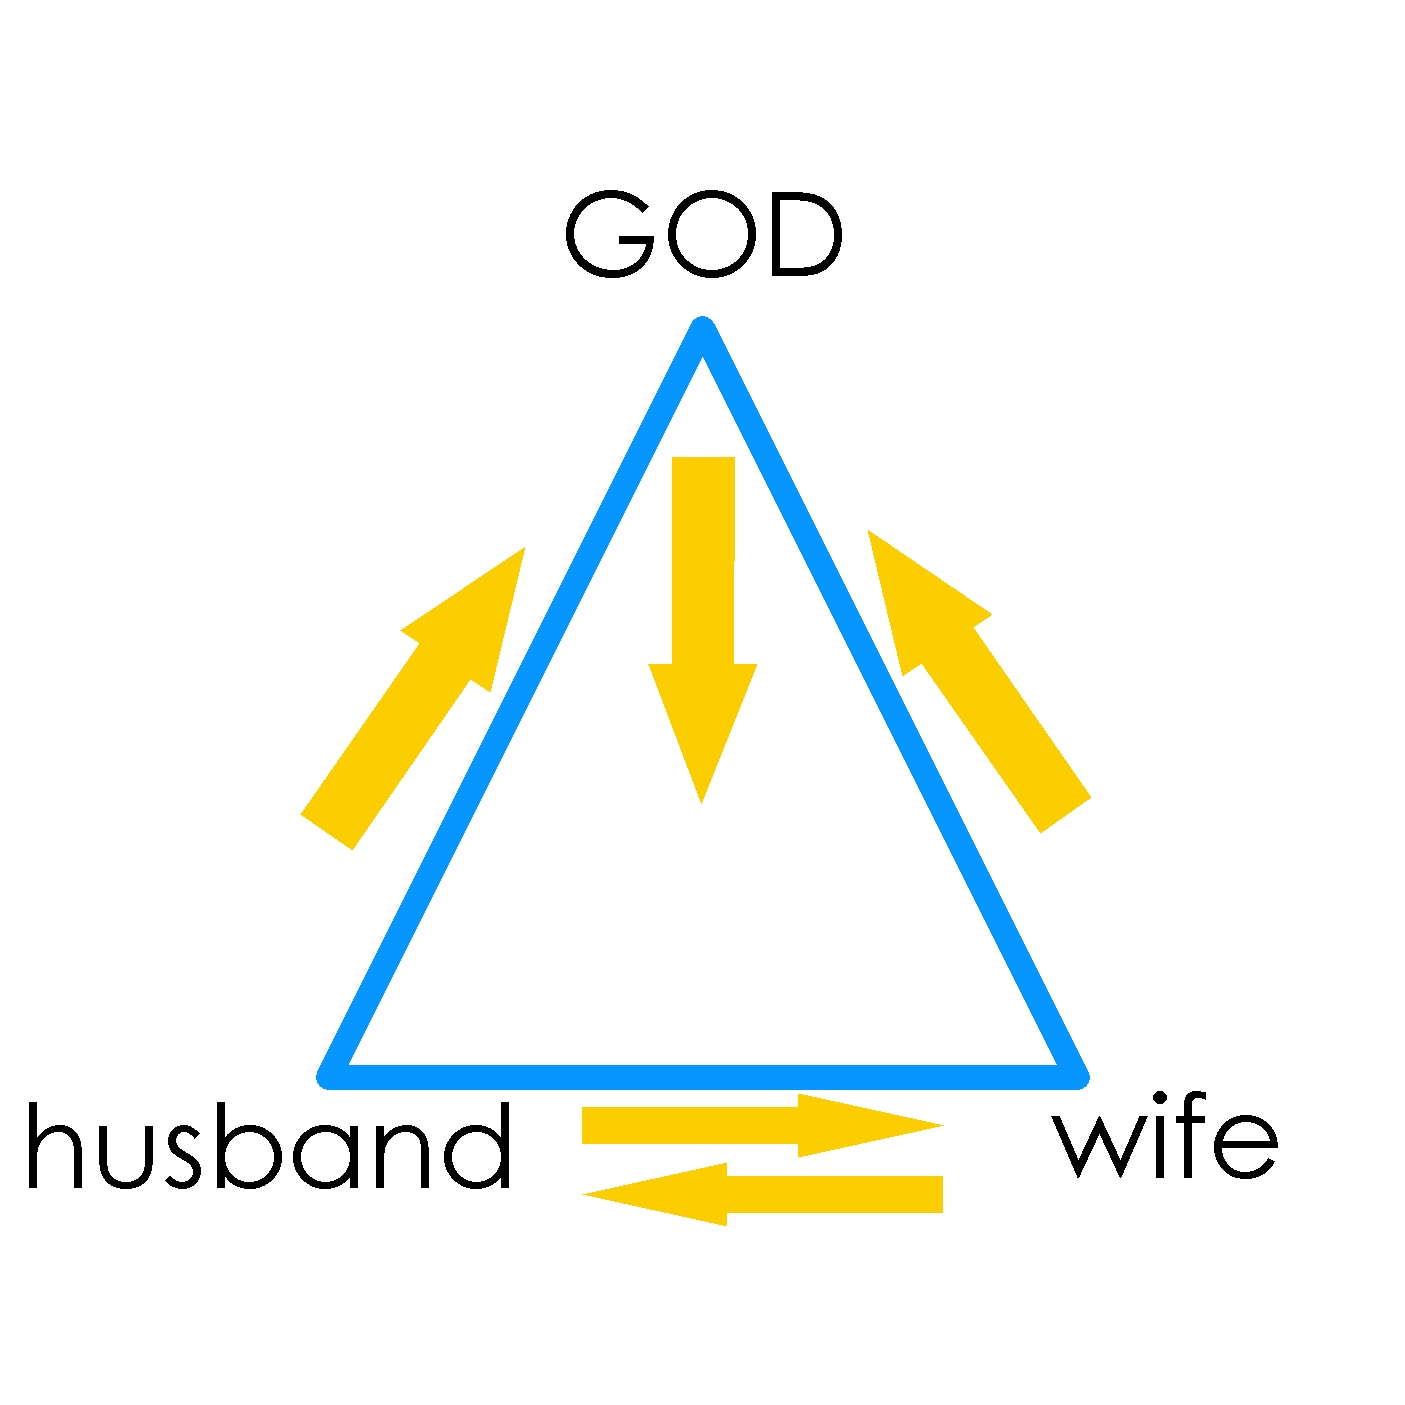 christian singles in triangle The eye of god in a triangle is still used in church architecture and christian art to symbolise the trinity and god's omnipresence and divine providence.